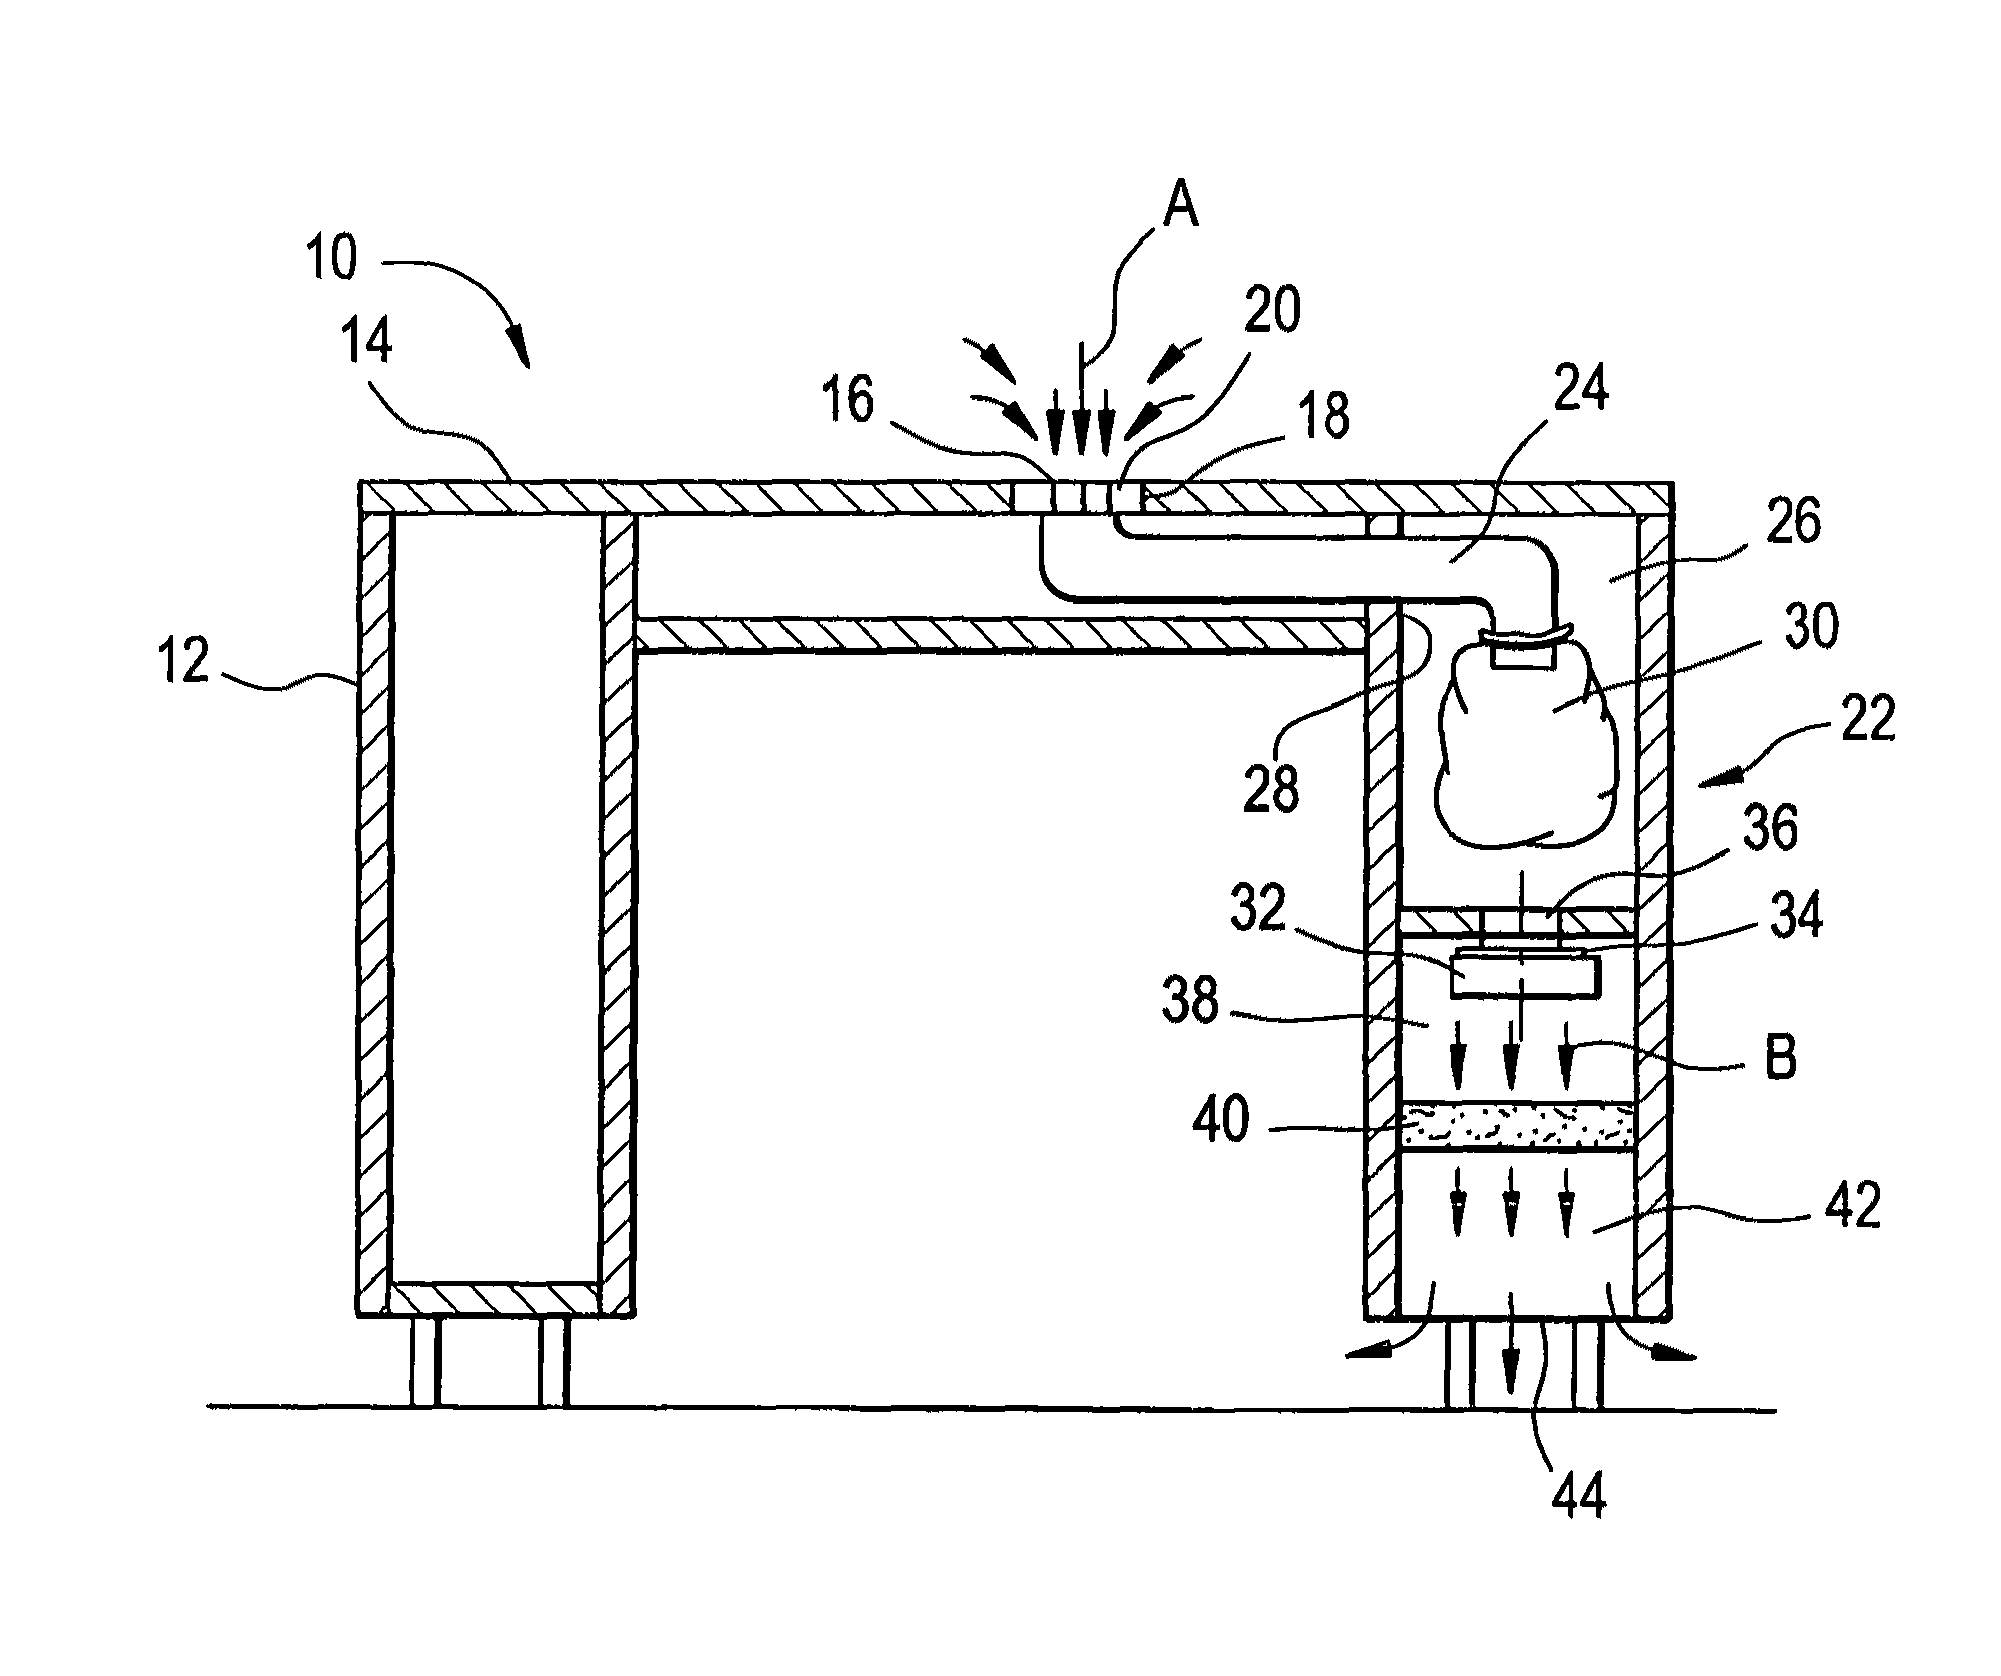 Patent Us8430940 Vacuum System For Nail Salon Work